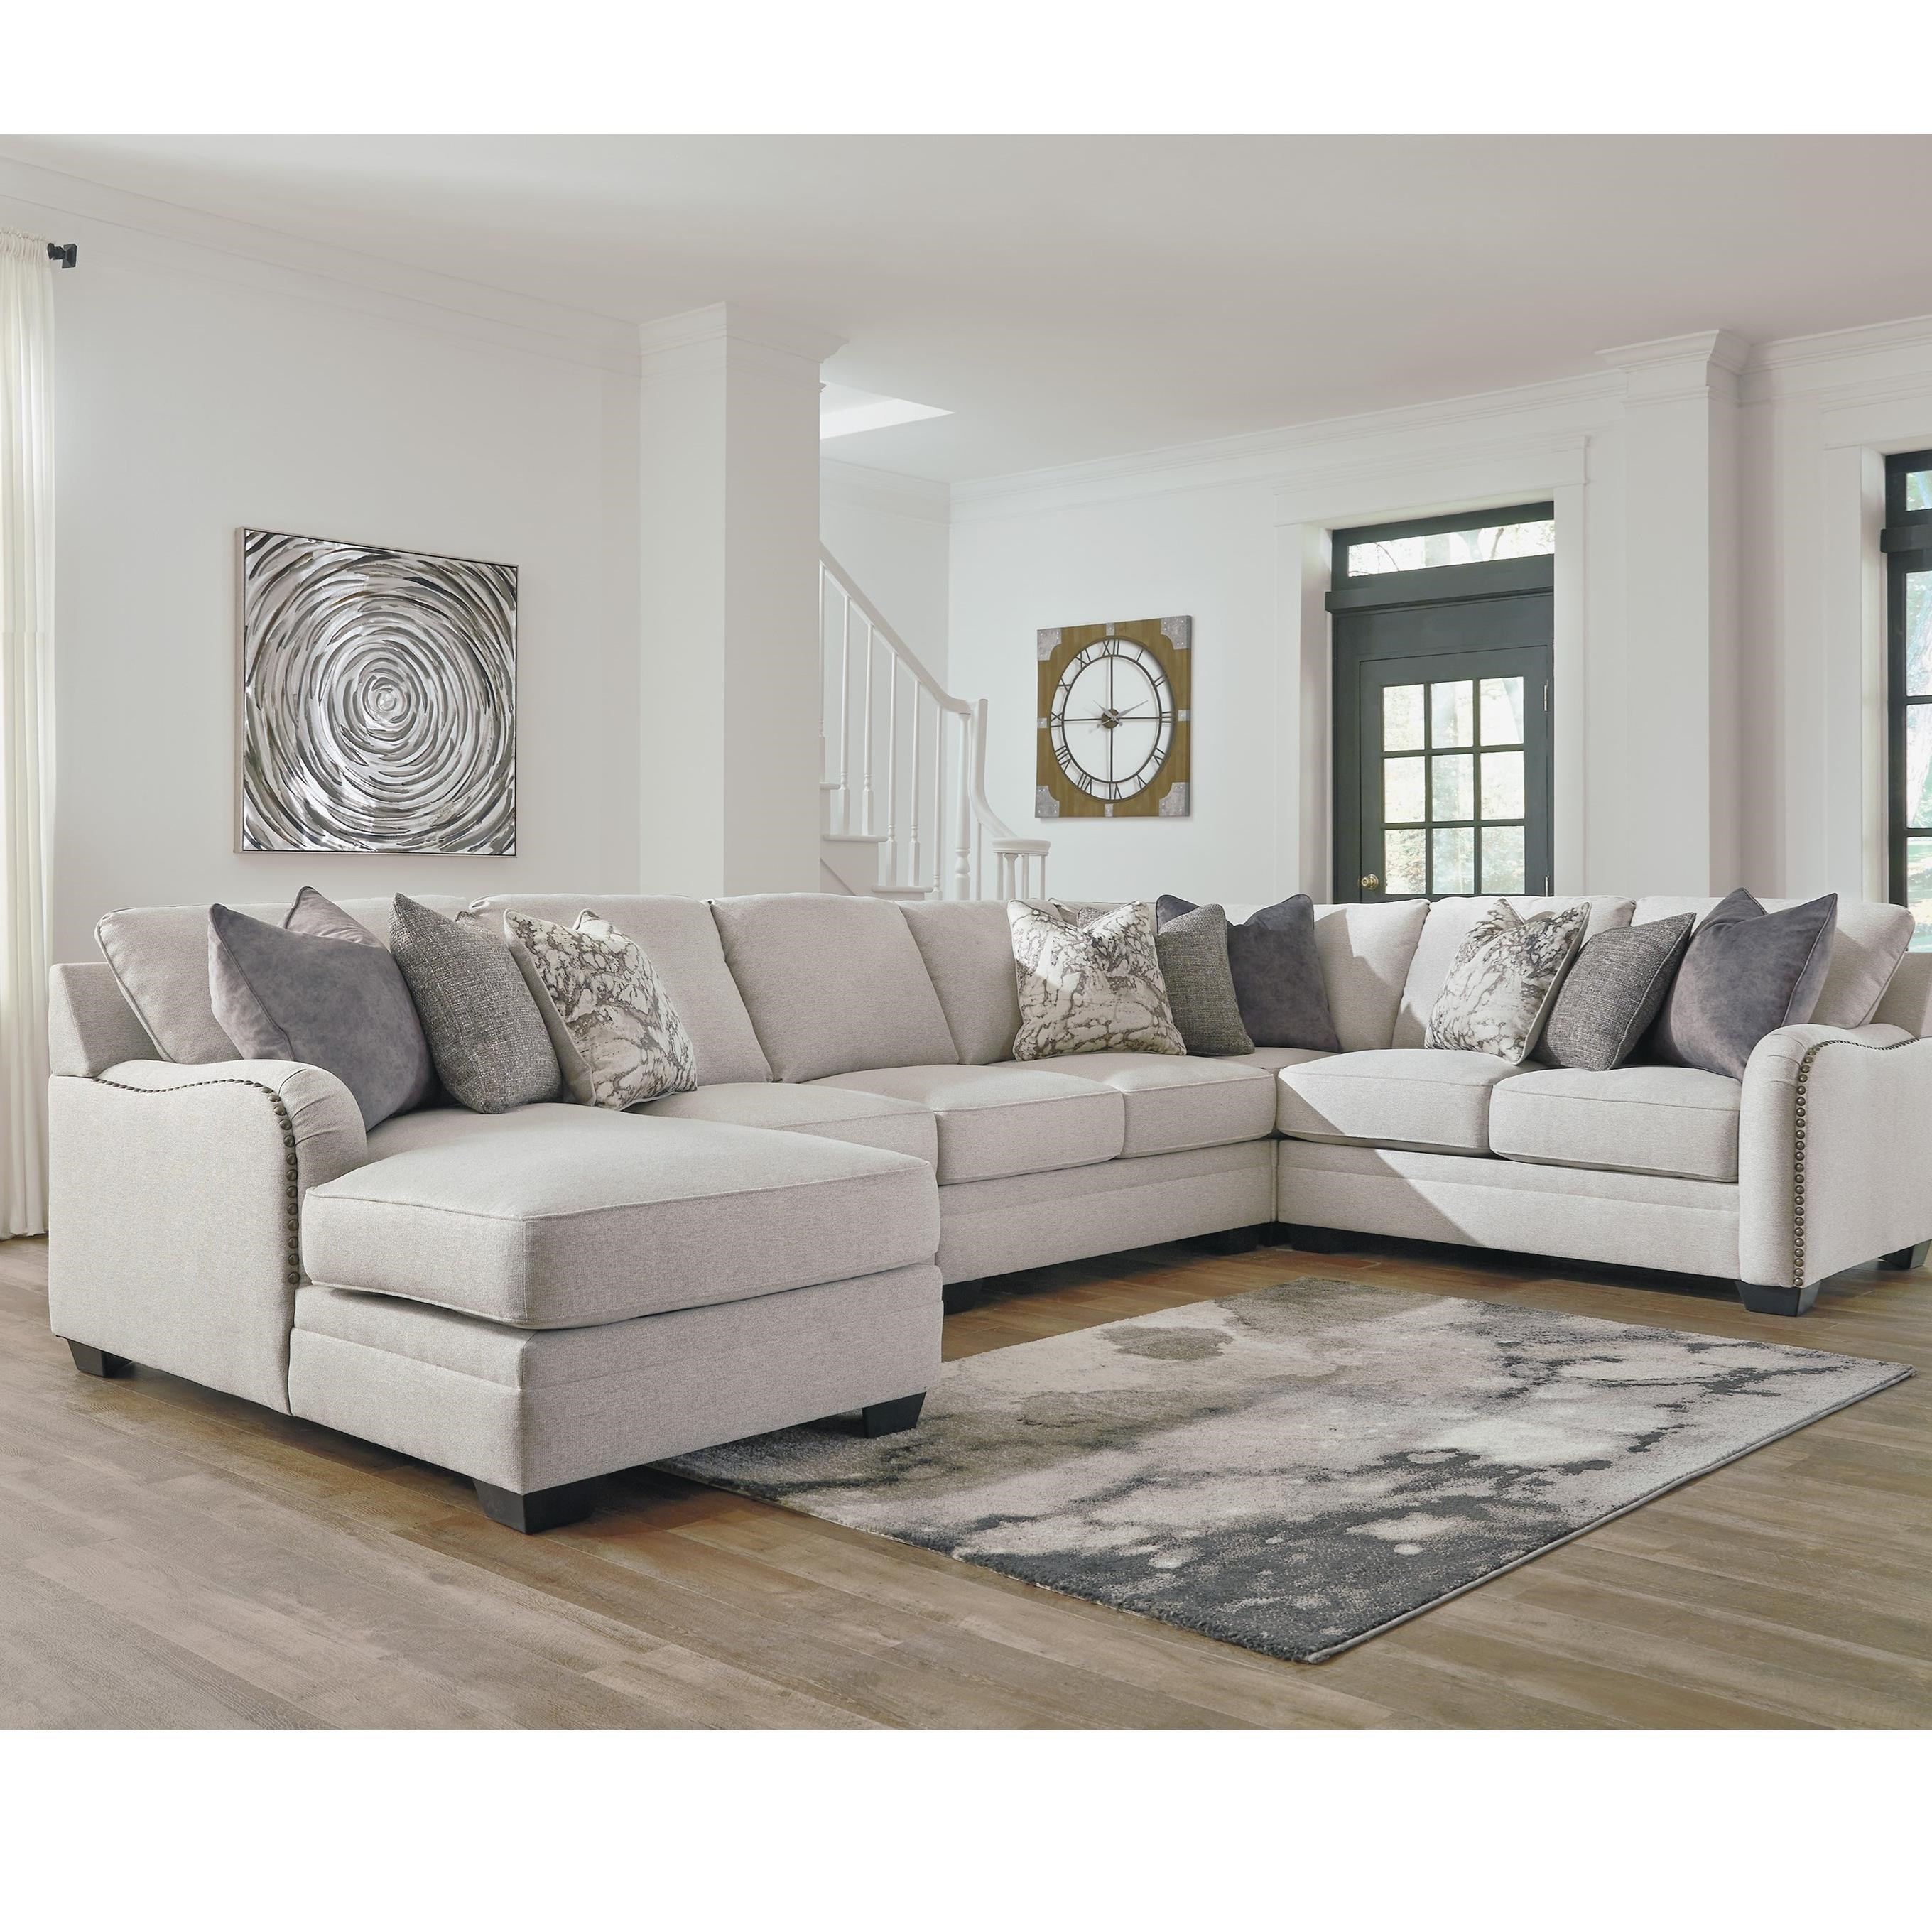 Dellara 5-Piece Sectional by Benchcraft at Walker's Furniture